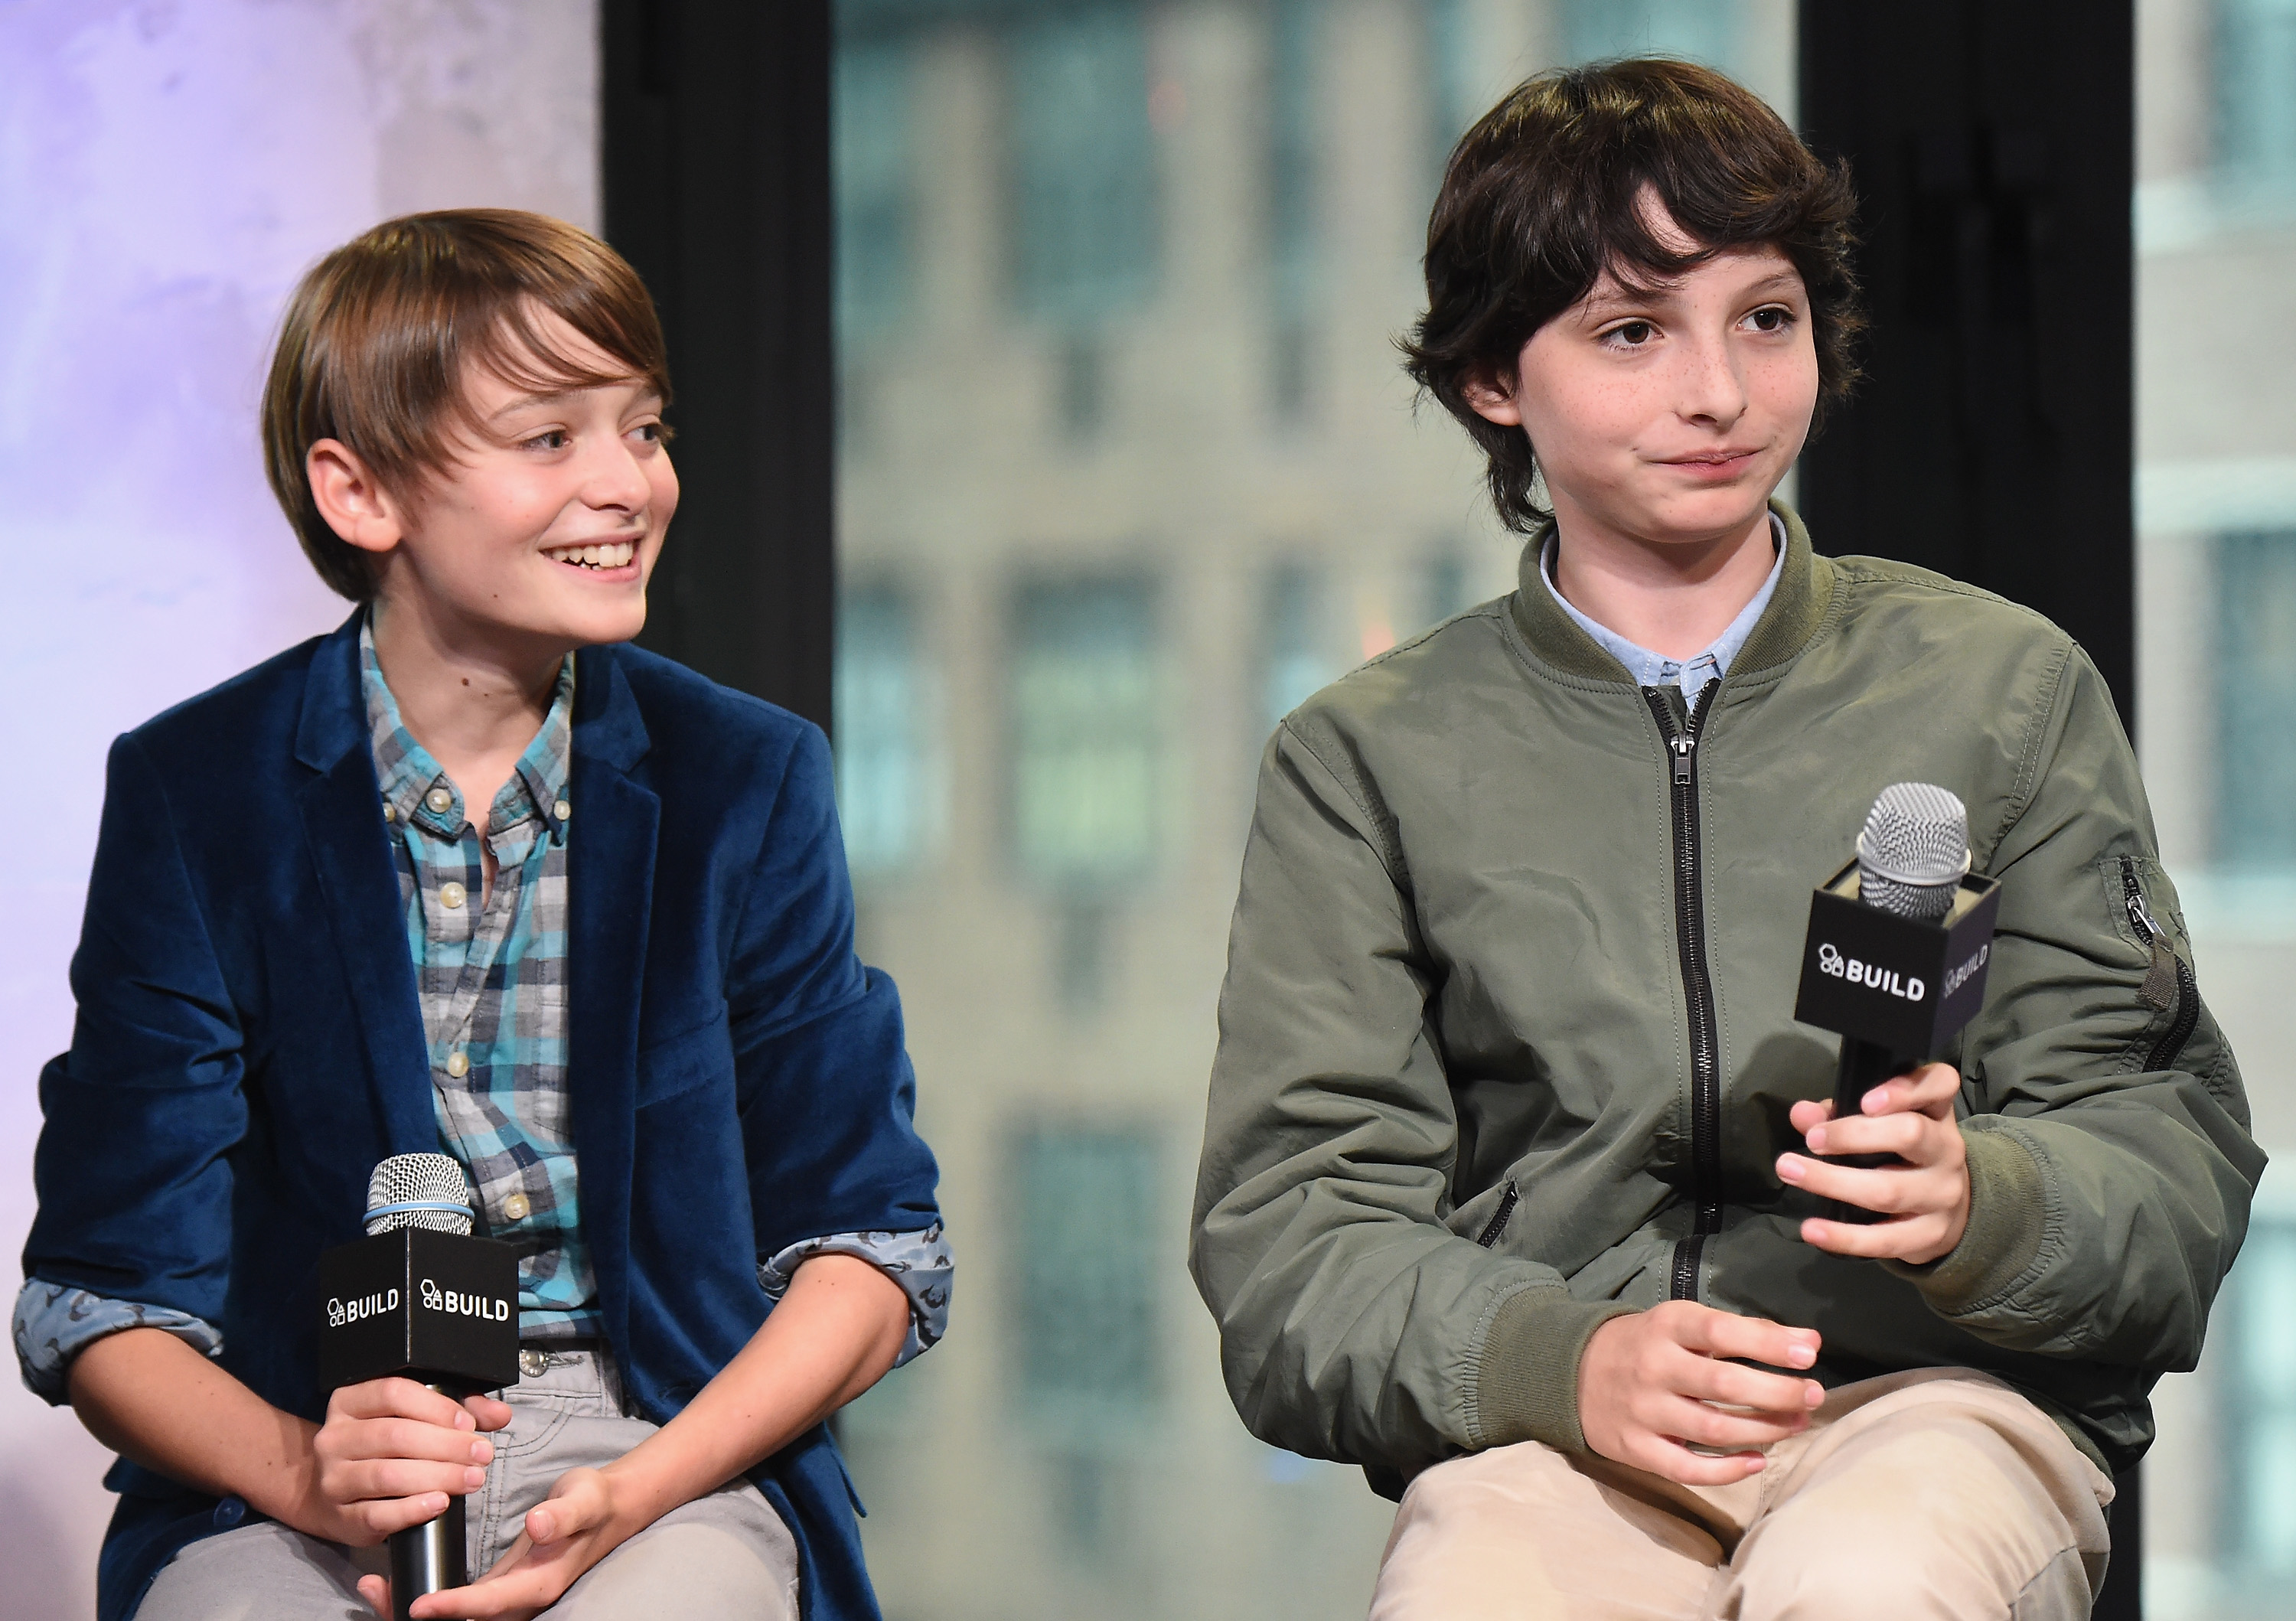 Will & Mike from Stranger Things